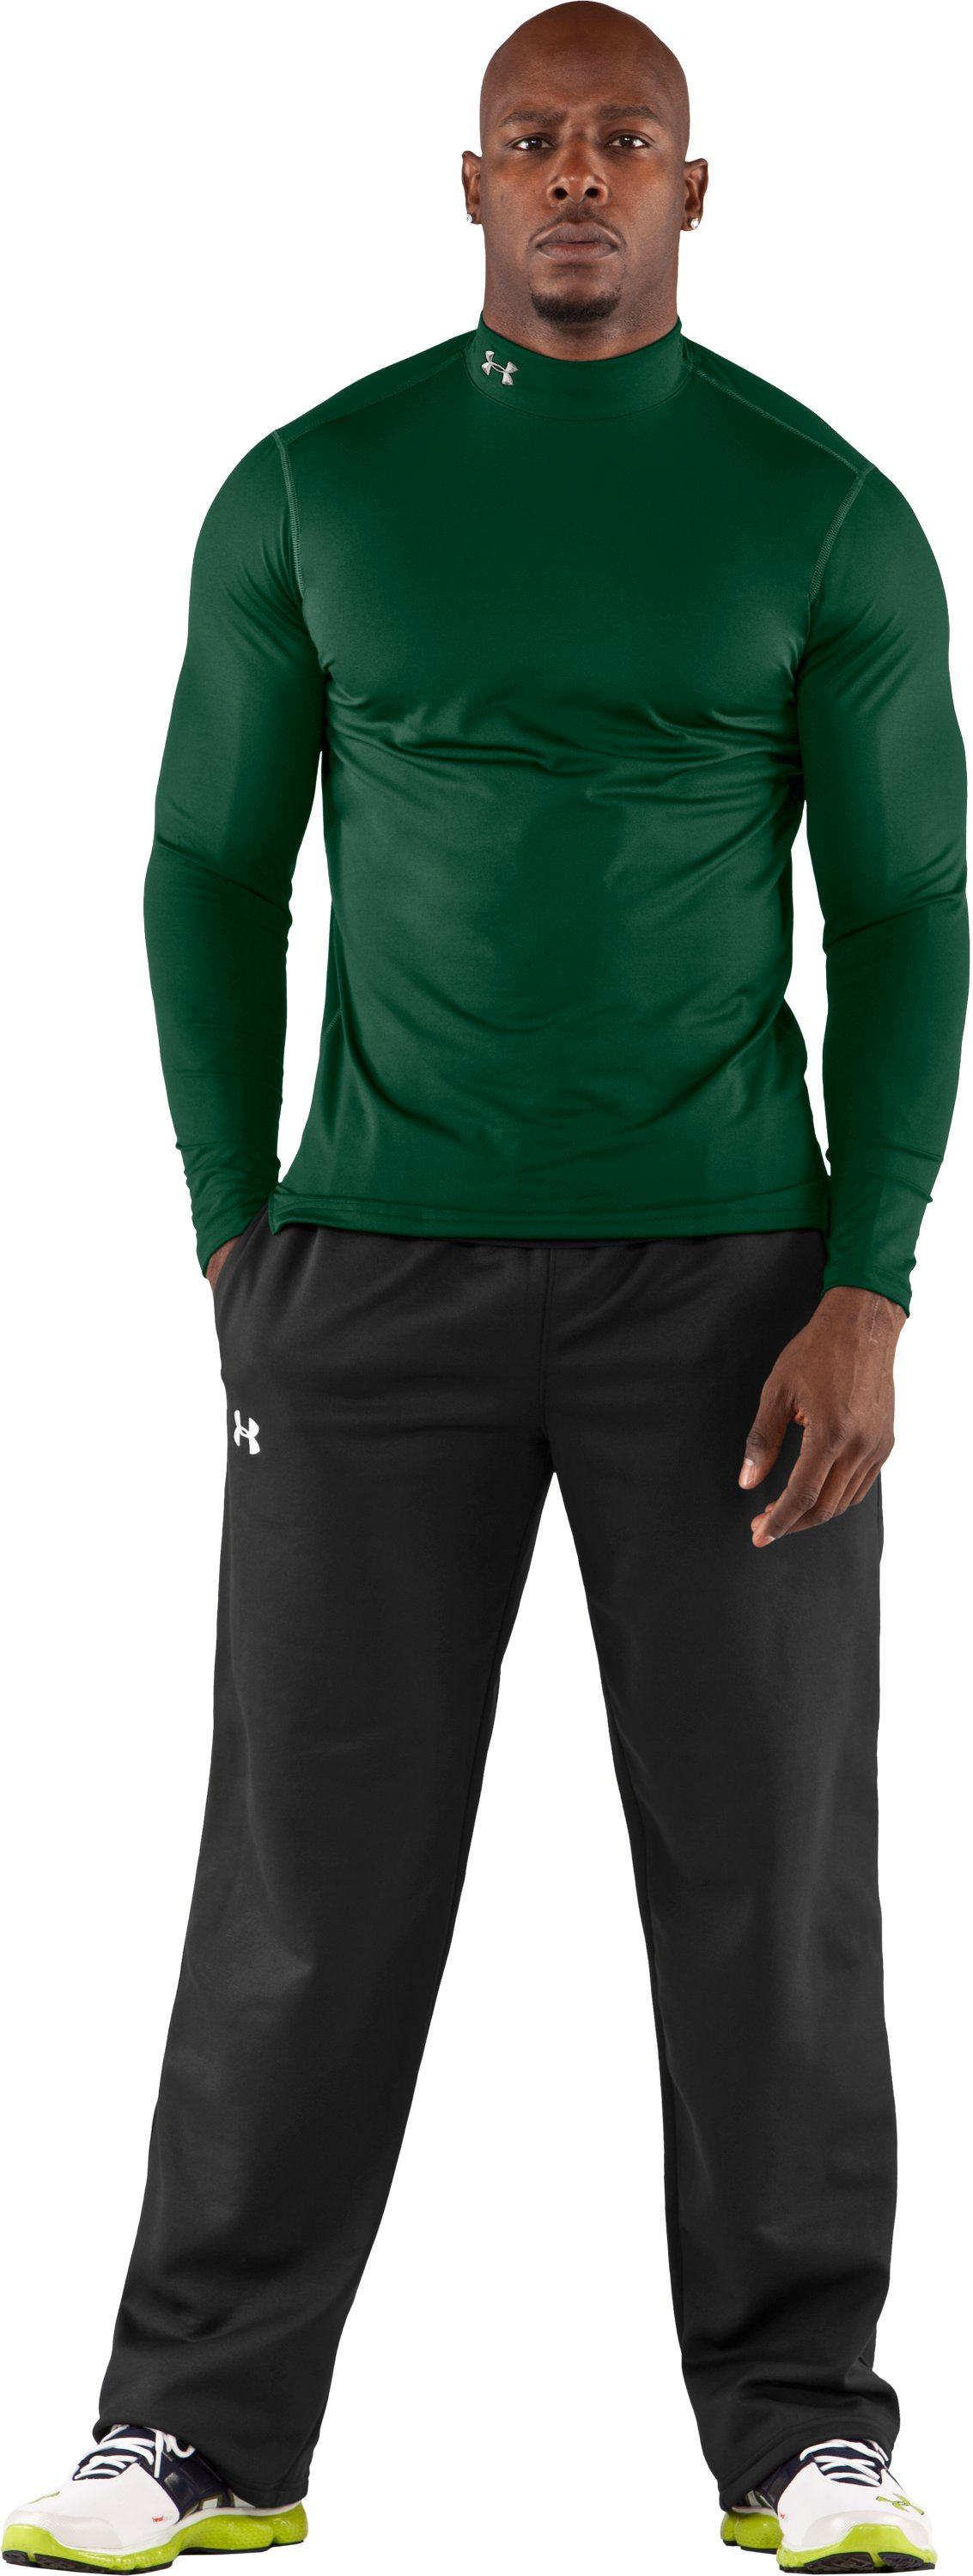 Men's ColdGear® Fitted Long Sleeve Mock, Forest Green